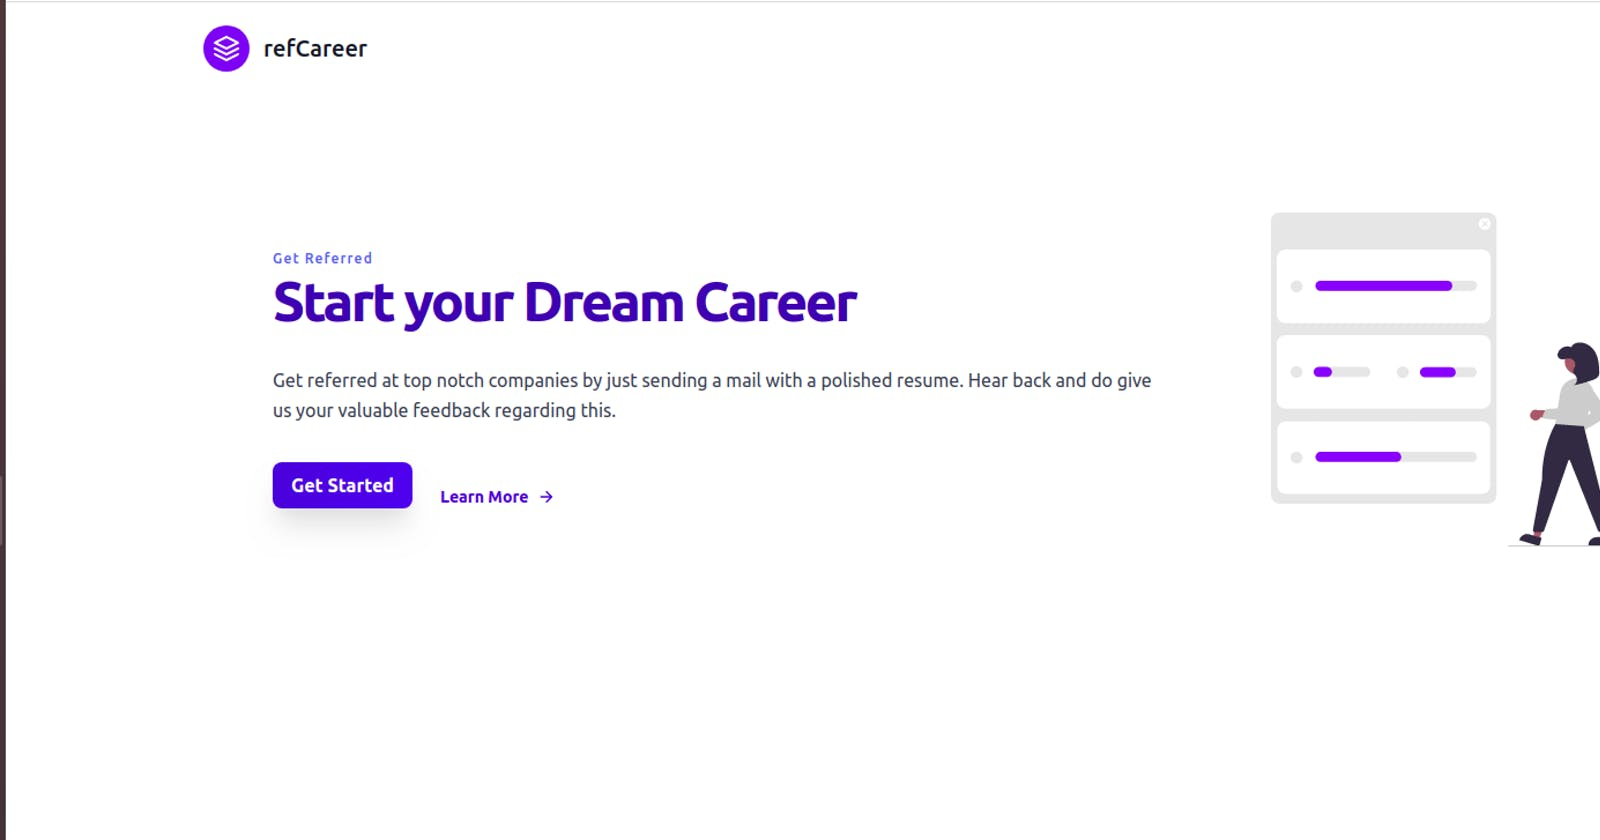 refCareer - A single click to your next dream referral  #christmashackathon